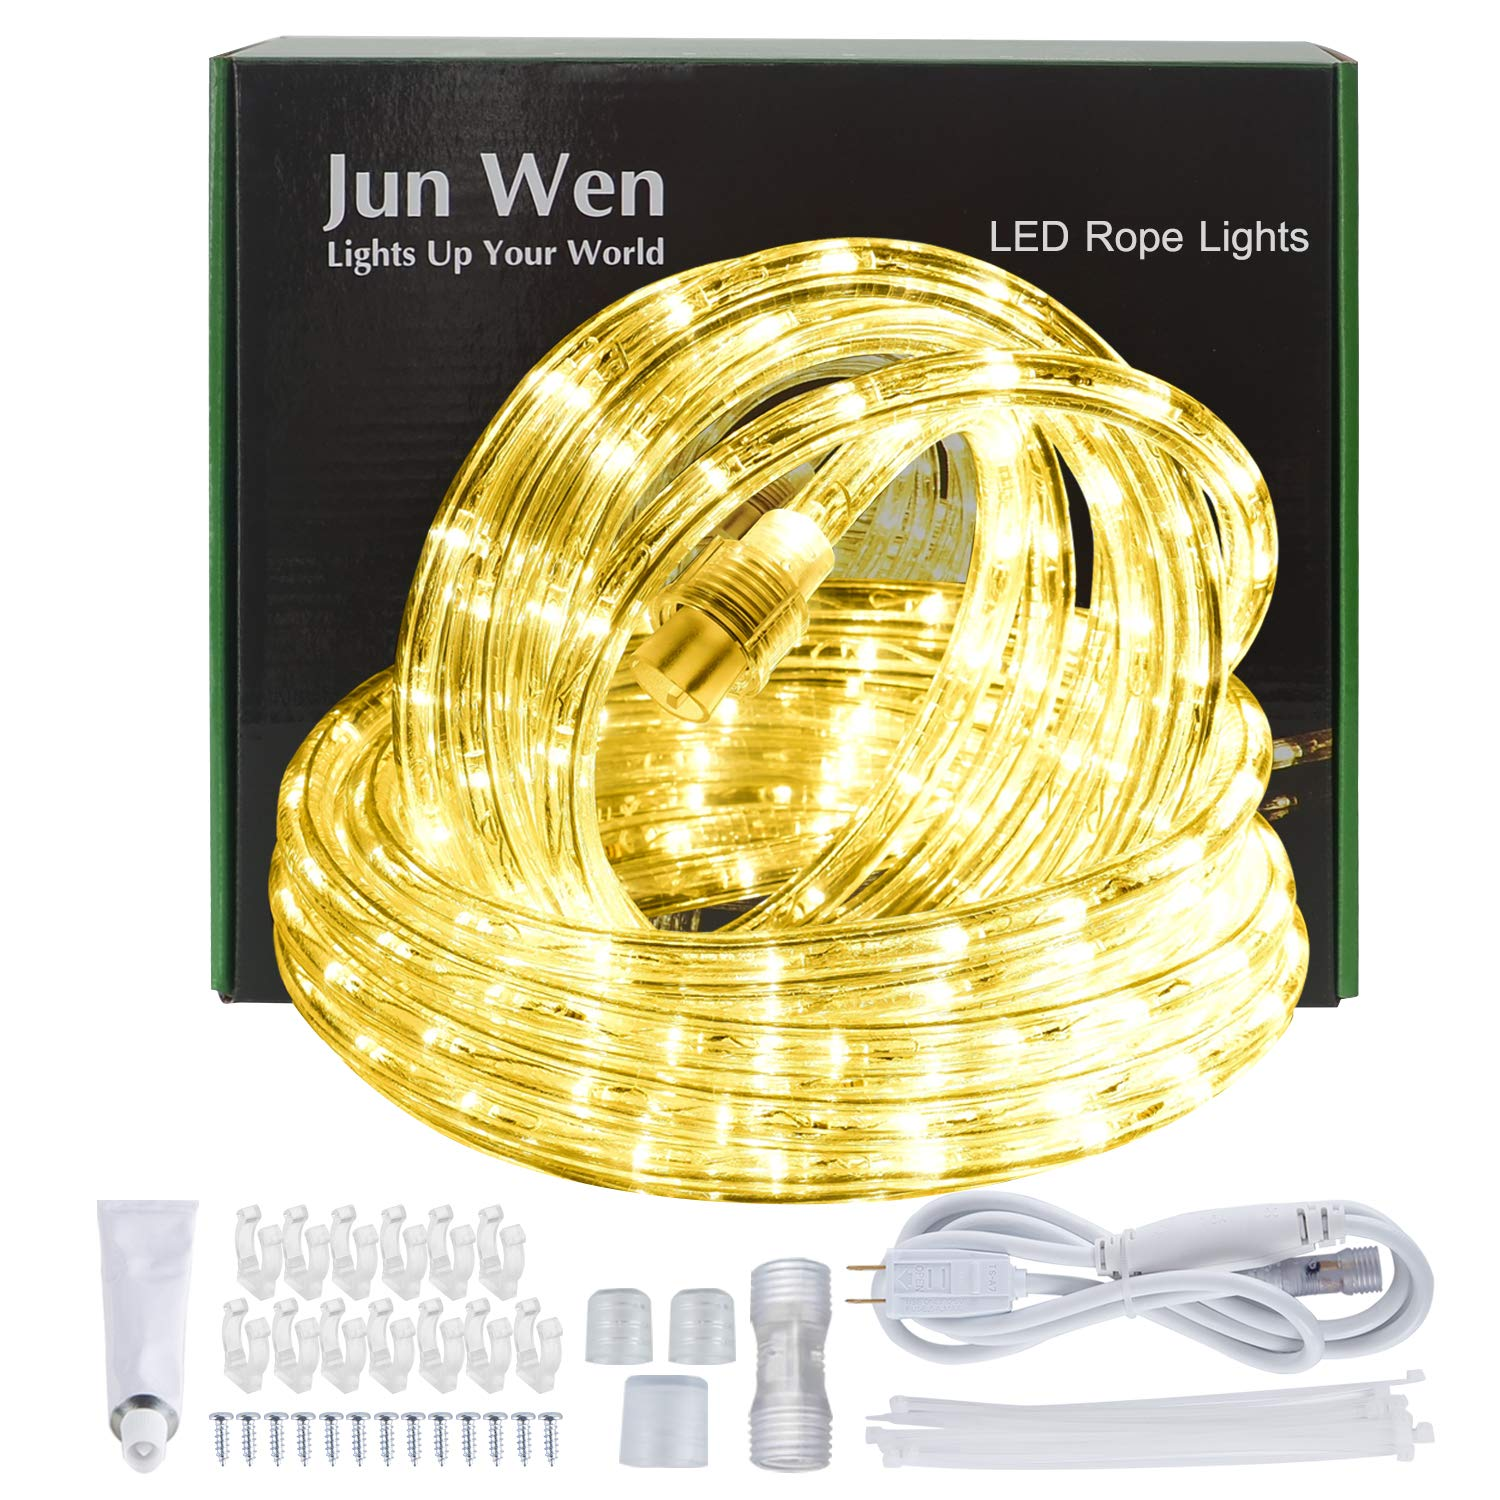 JUNWEN LED Rope Lights 432 LEDs Outdoor Indoor 39ft/12m 110V Waterproof Plugin Decorative Warm White String Ribbon Tape Lighting Flexible Connectable Battery Powered Connector Fuse Holder